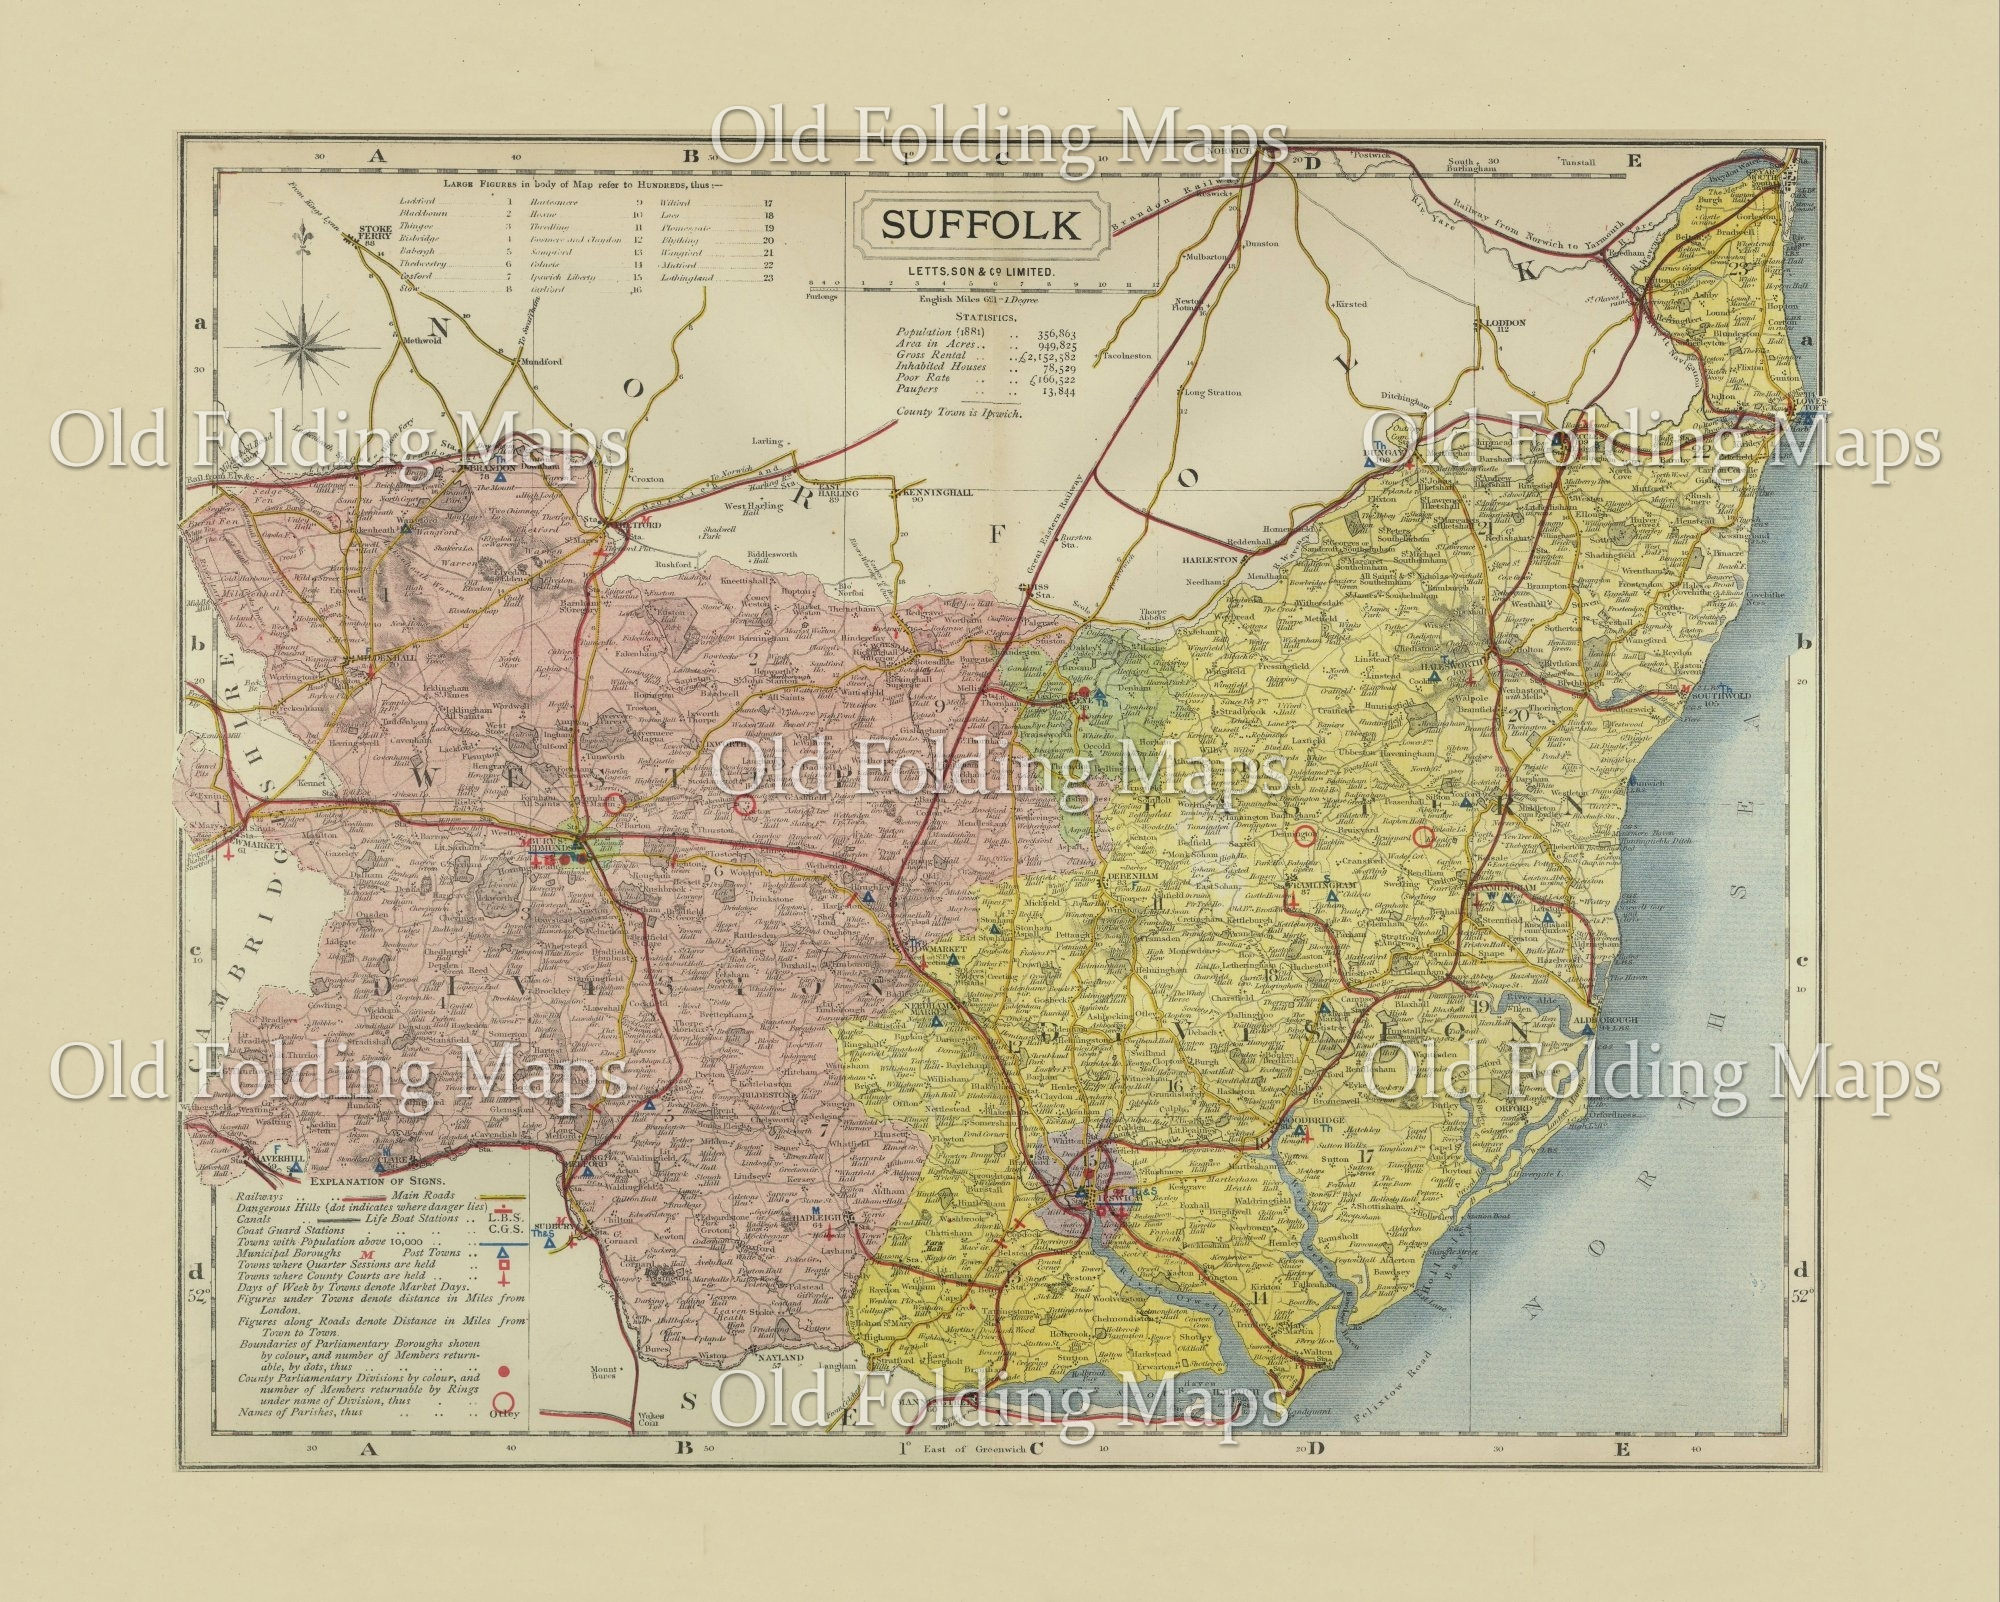 Antique County Map of Suffolk circa 1884